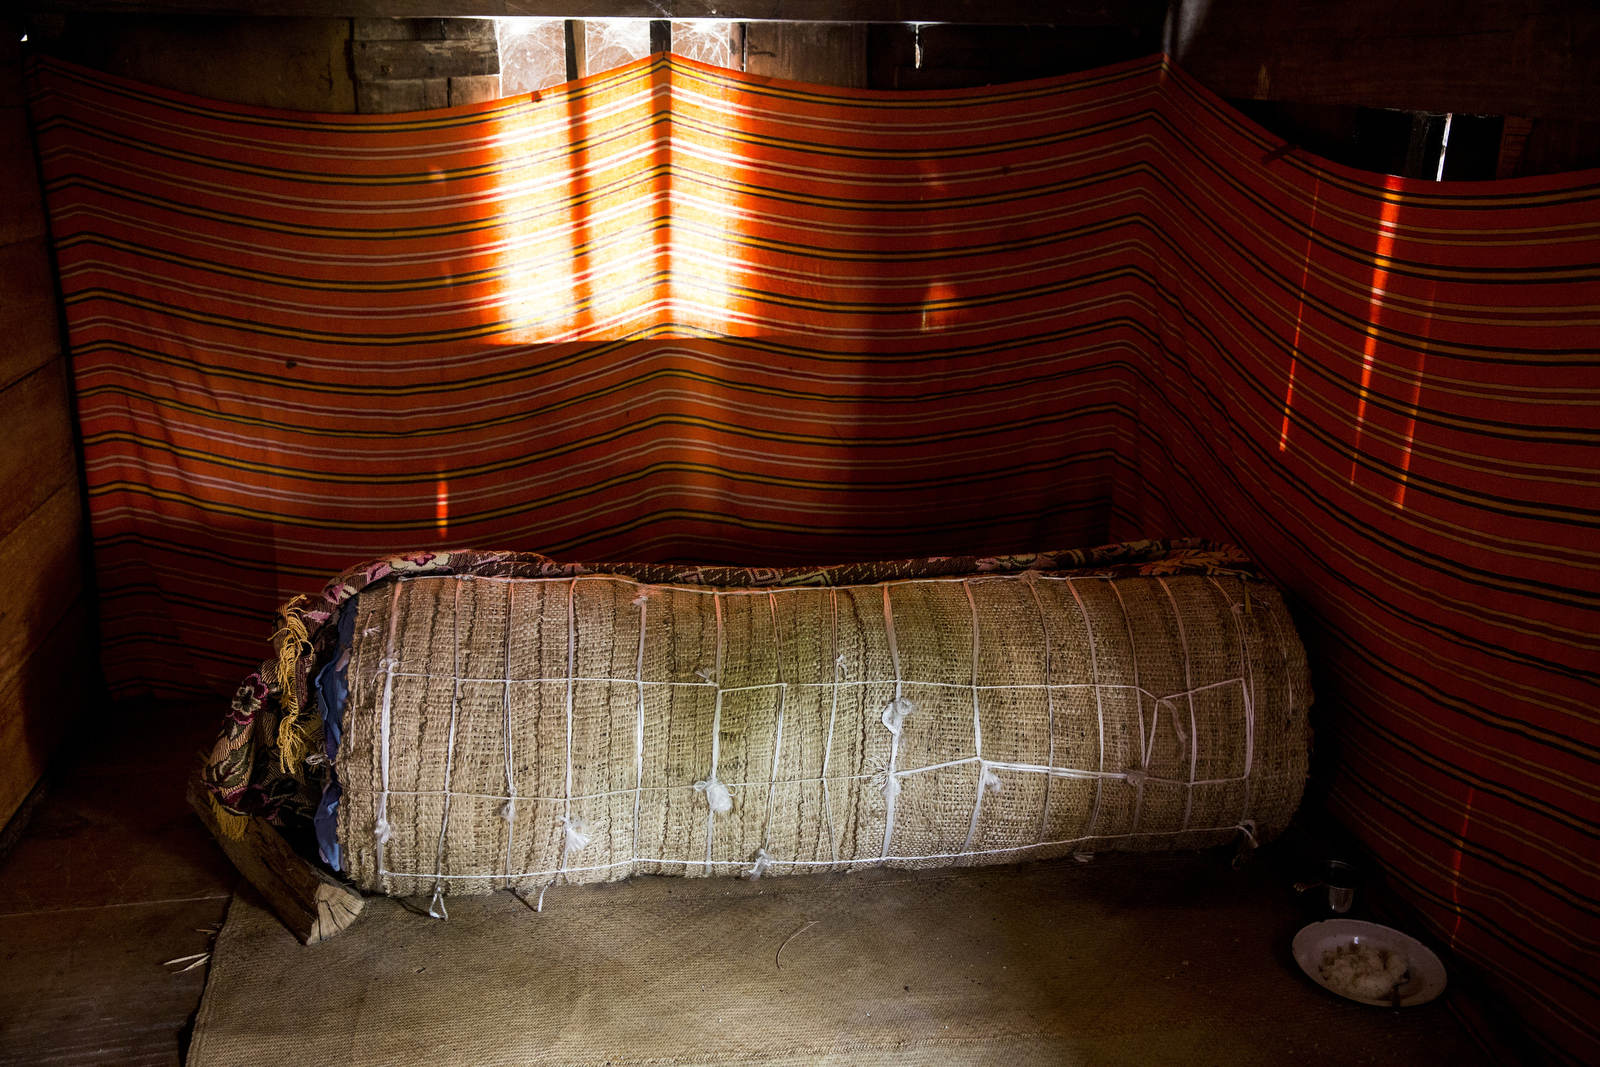 A traditionally wrapped corpse in the barn of a home in Toraja, a remote part of Indonesia where the deceased are kept in the house for years as the family saves up money for the elaborate funeral procession. They also take their time to say goodbye, and the pain of processing death can be much more gradual.